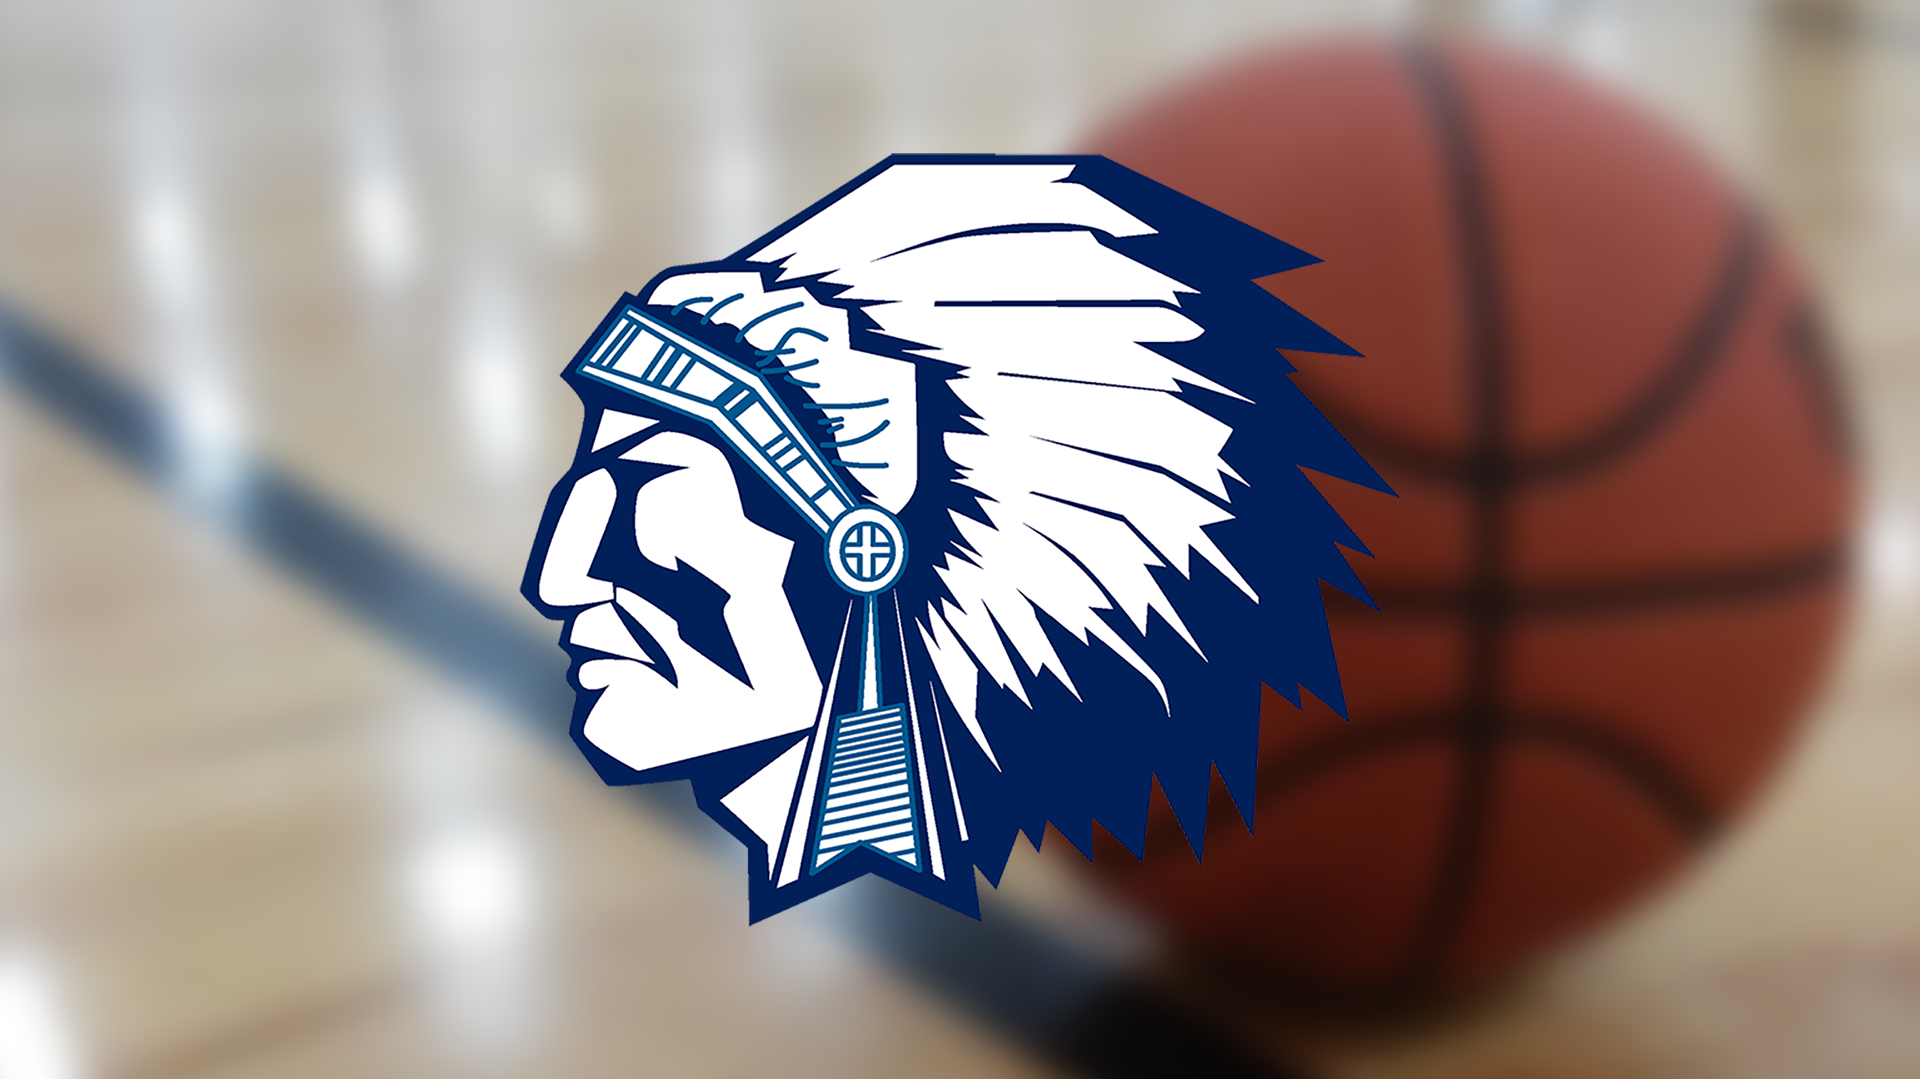 2019-20 Boys Basketball Preview: Woodlan Warriors